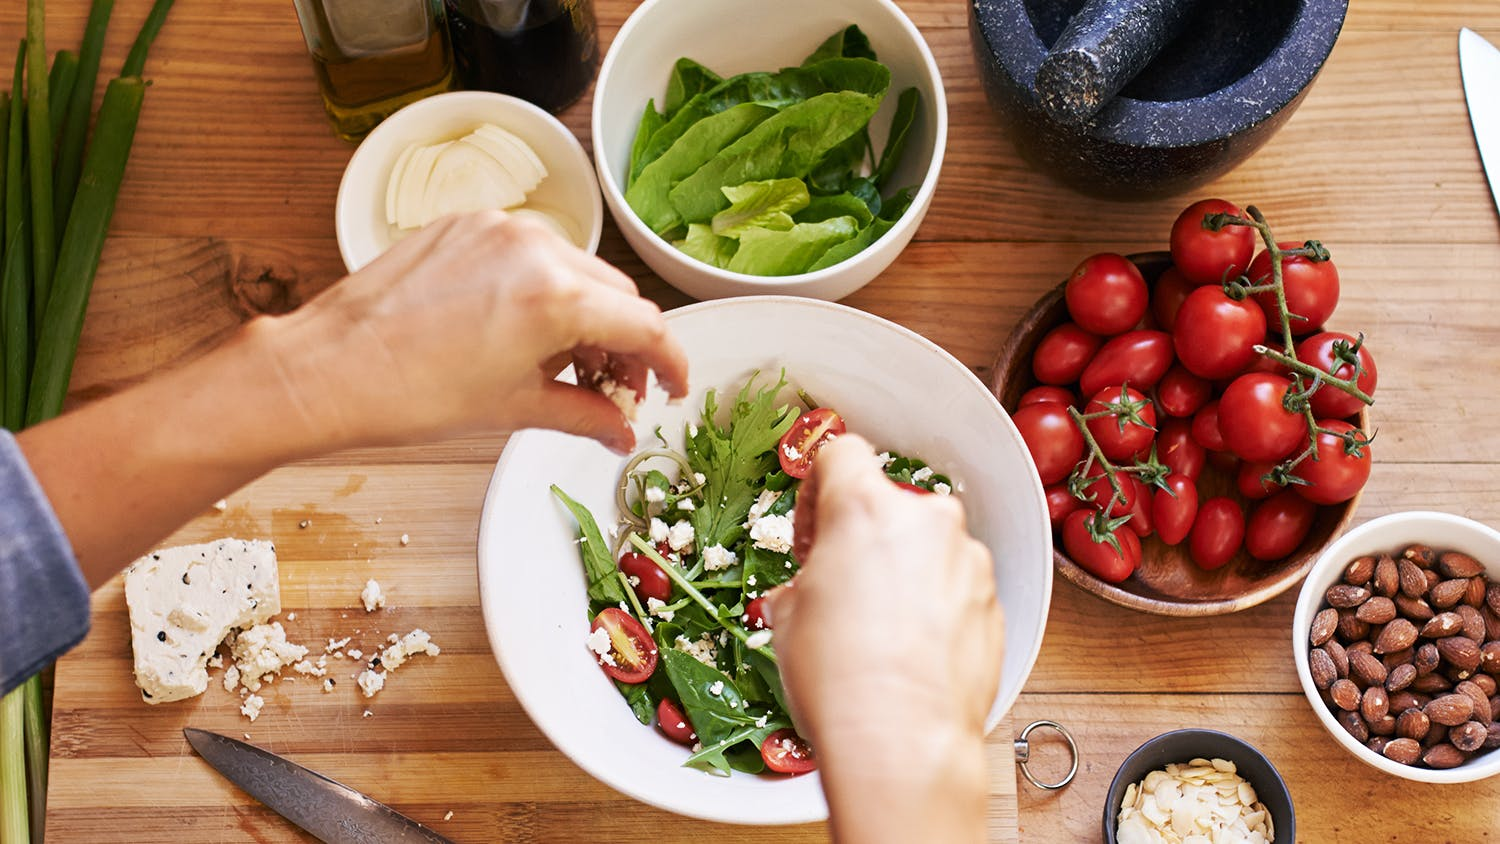 How to follow a healthy vegetarian keto diet